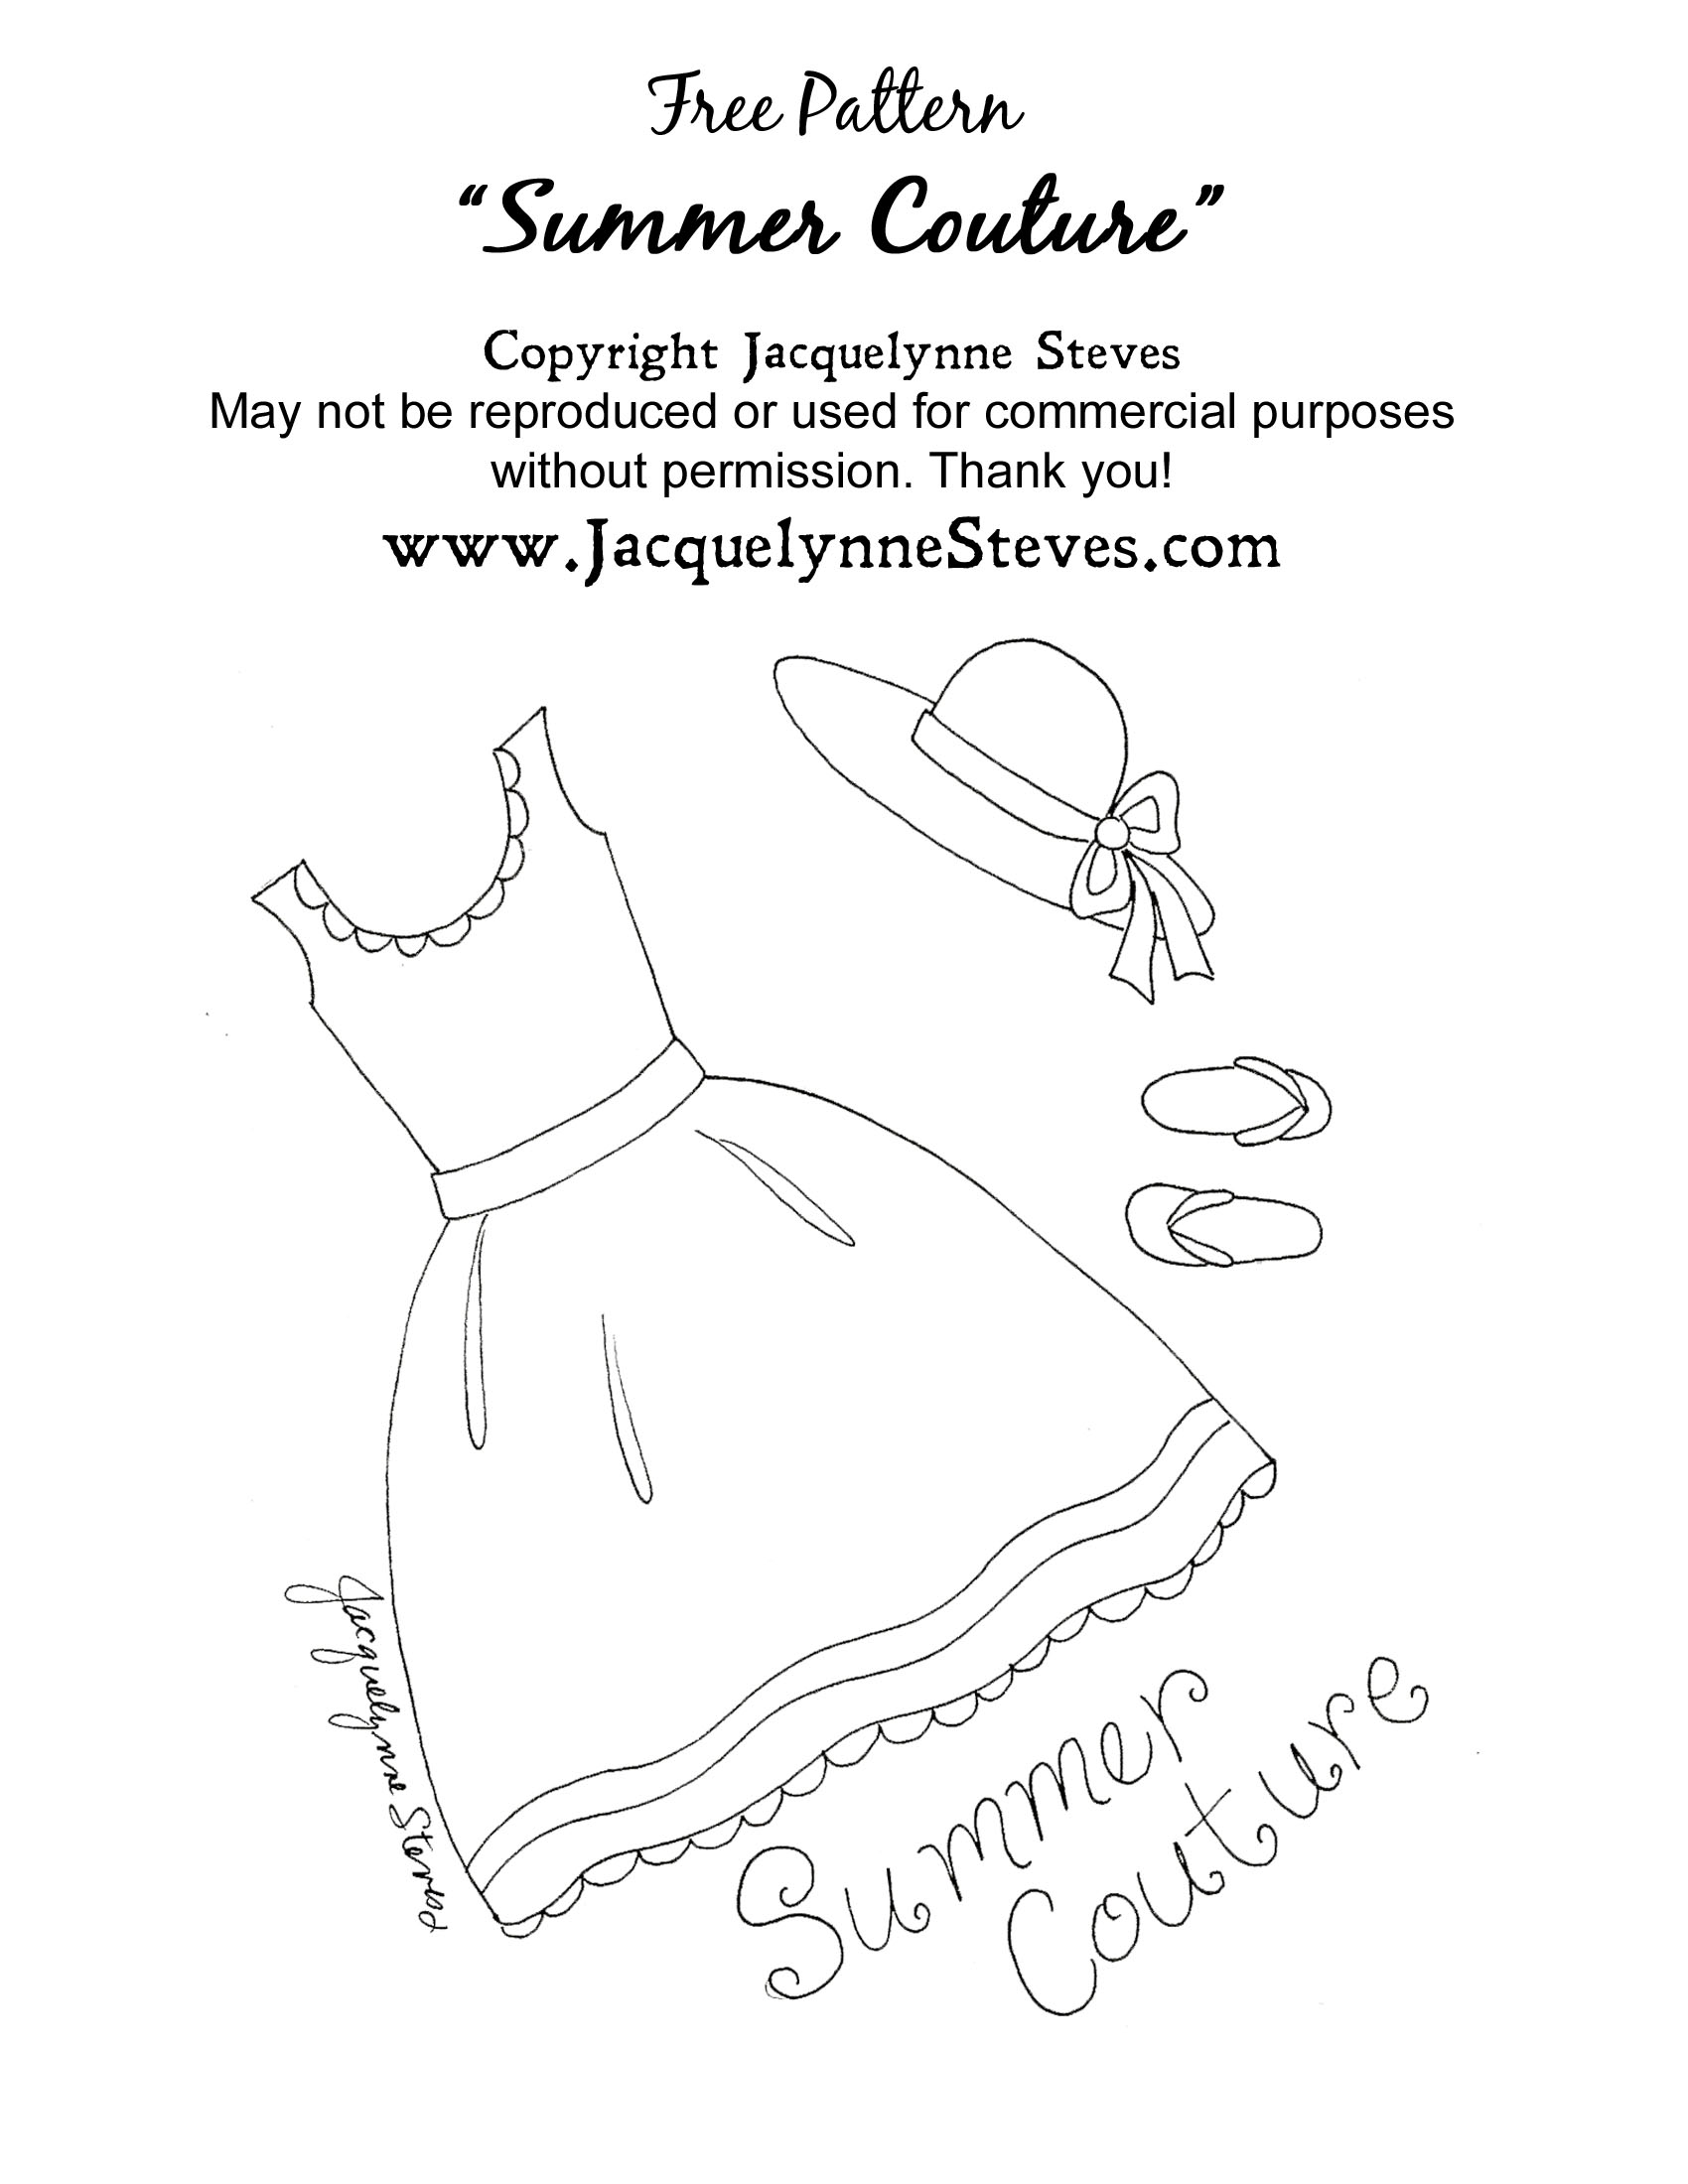 Free Summer Couture Embroidery Pattern